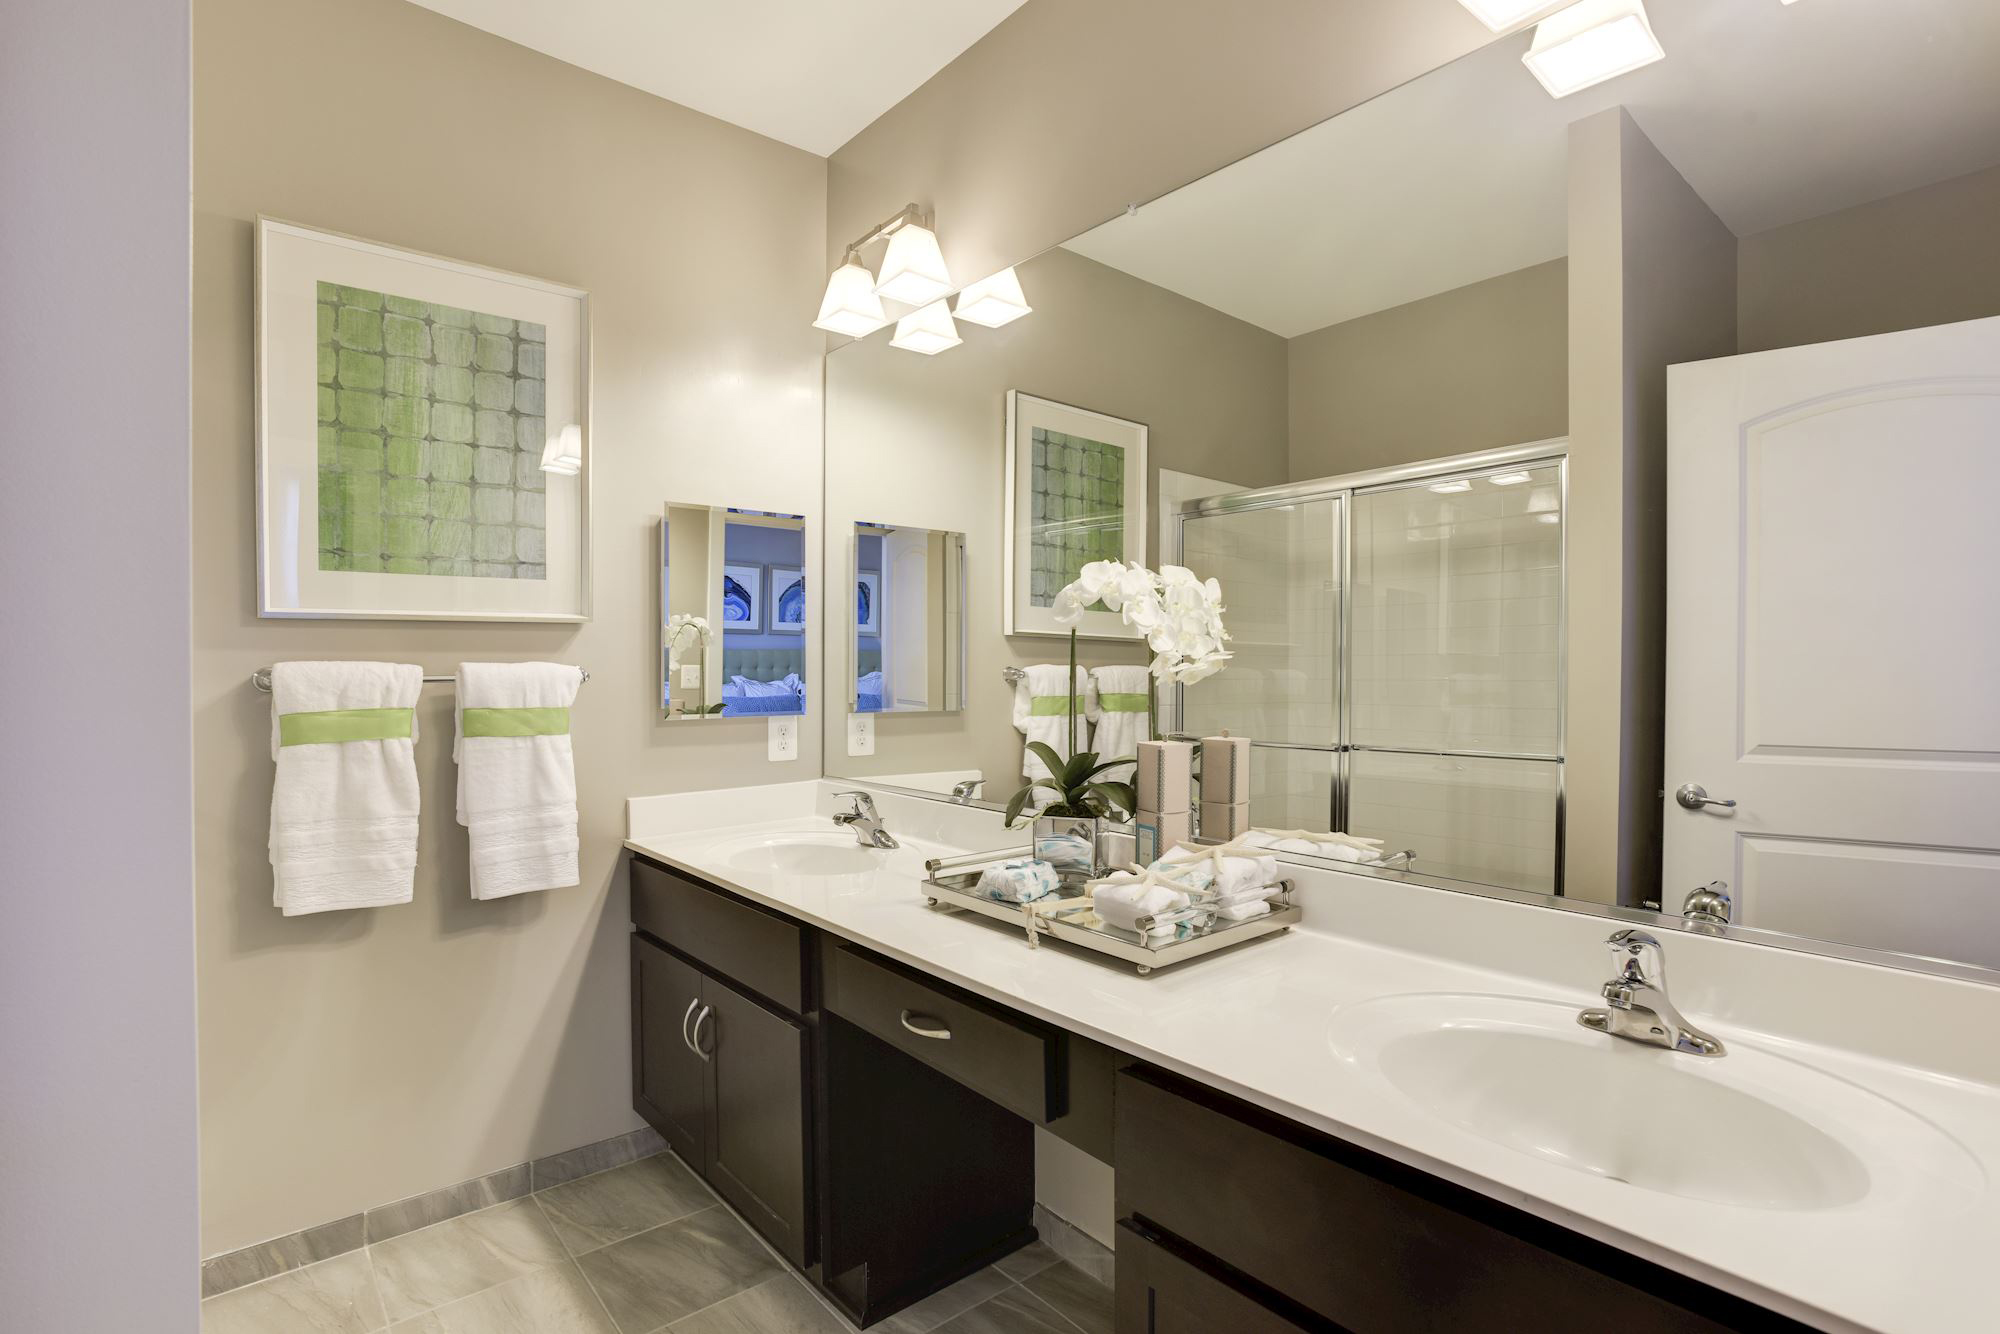 Avanti Luxury Apartments in Bel Air, MD - Master Bathroom